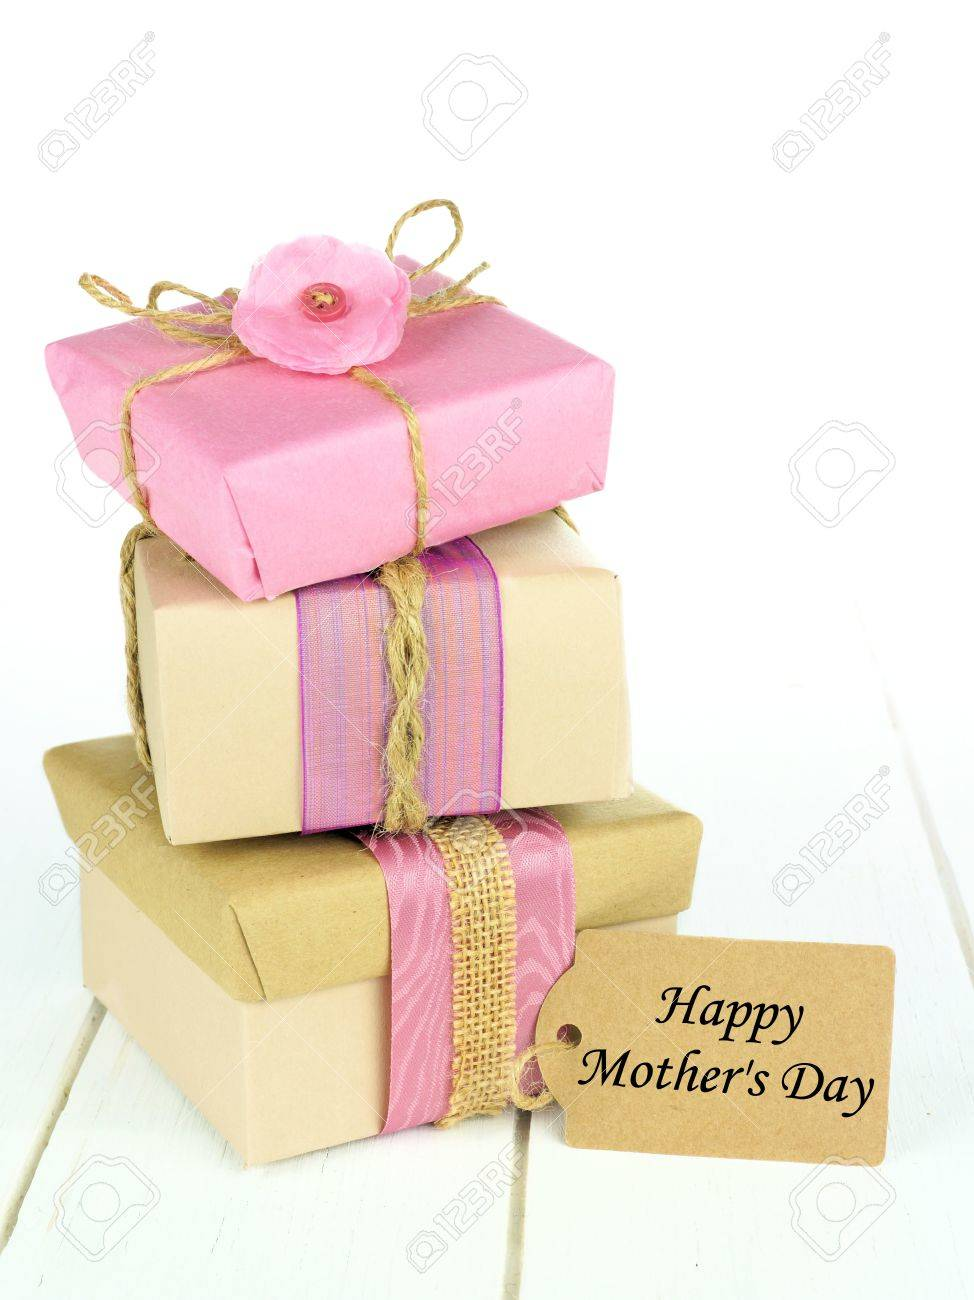 Stacked Rustic Gift Boxes With Happy Mothers Day Tag On White ...